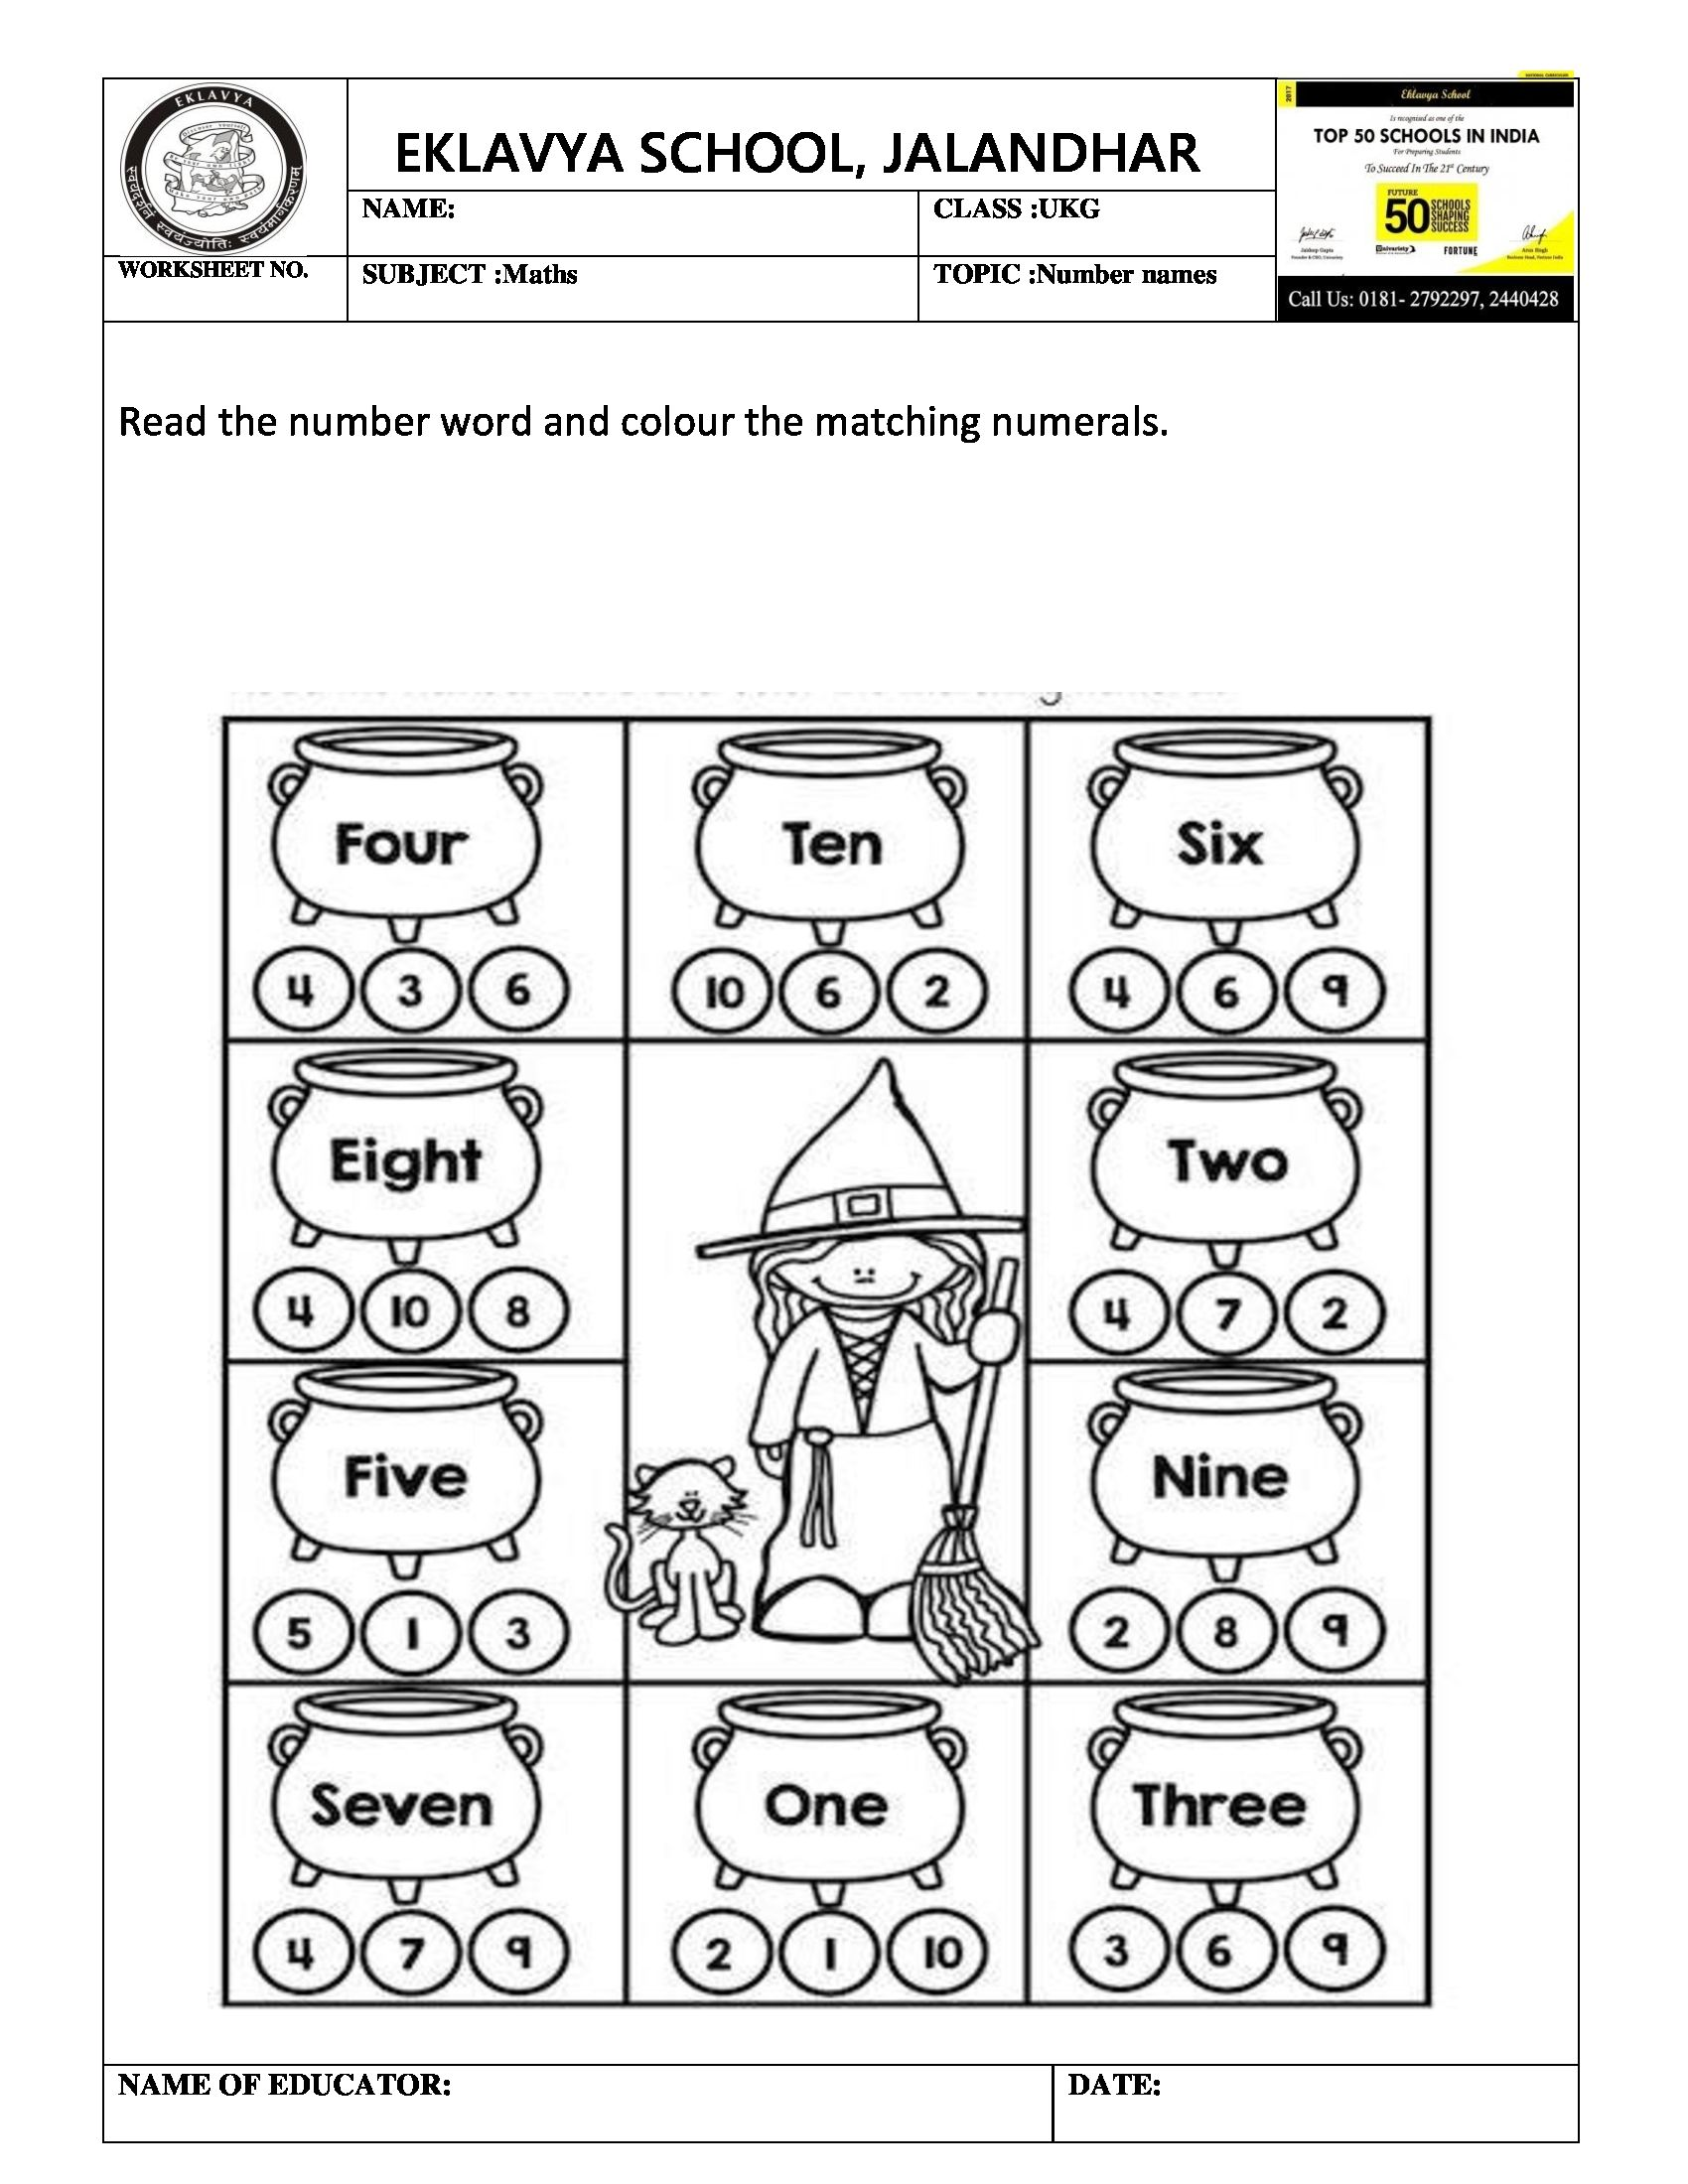 Worksheet On Number Names